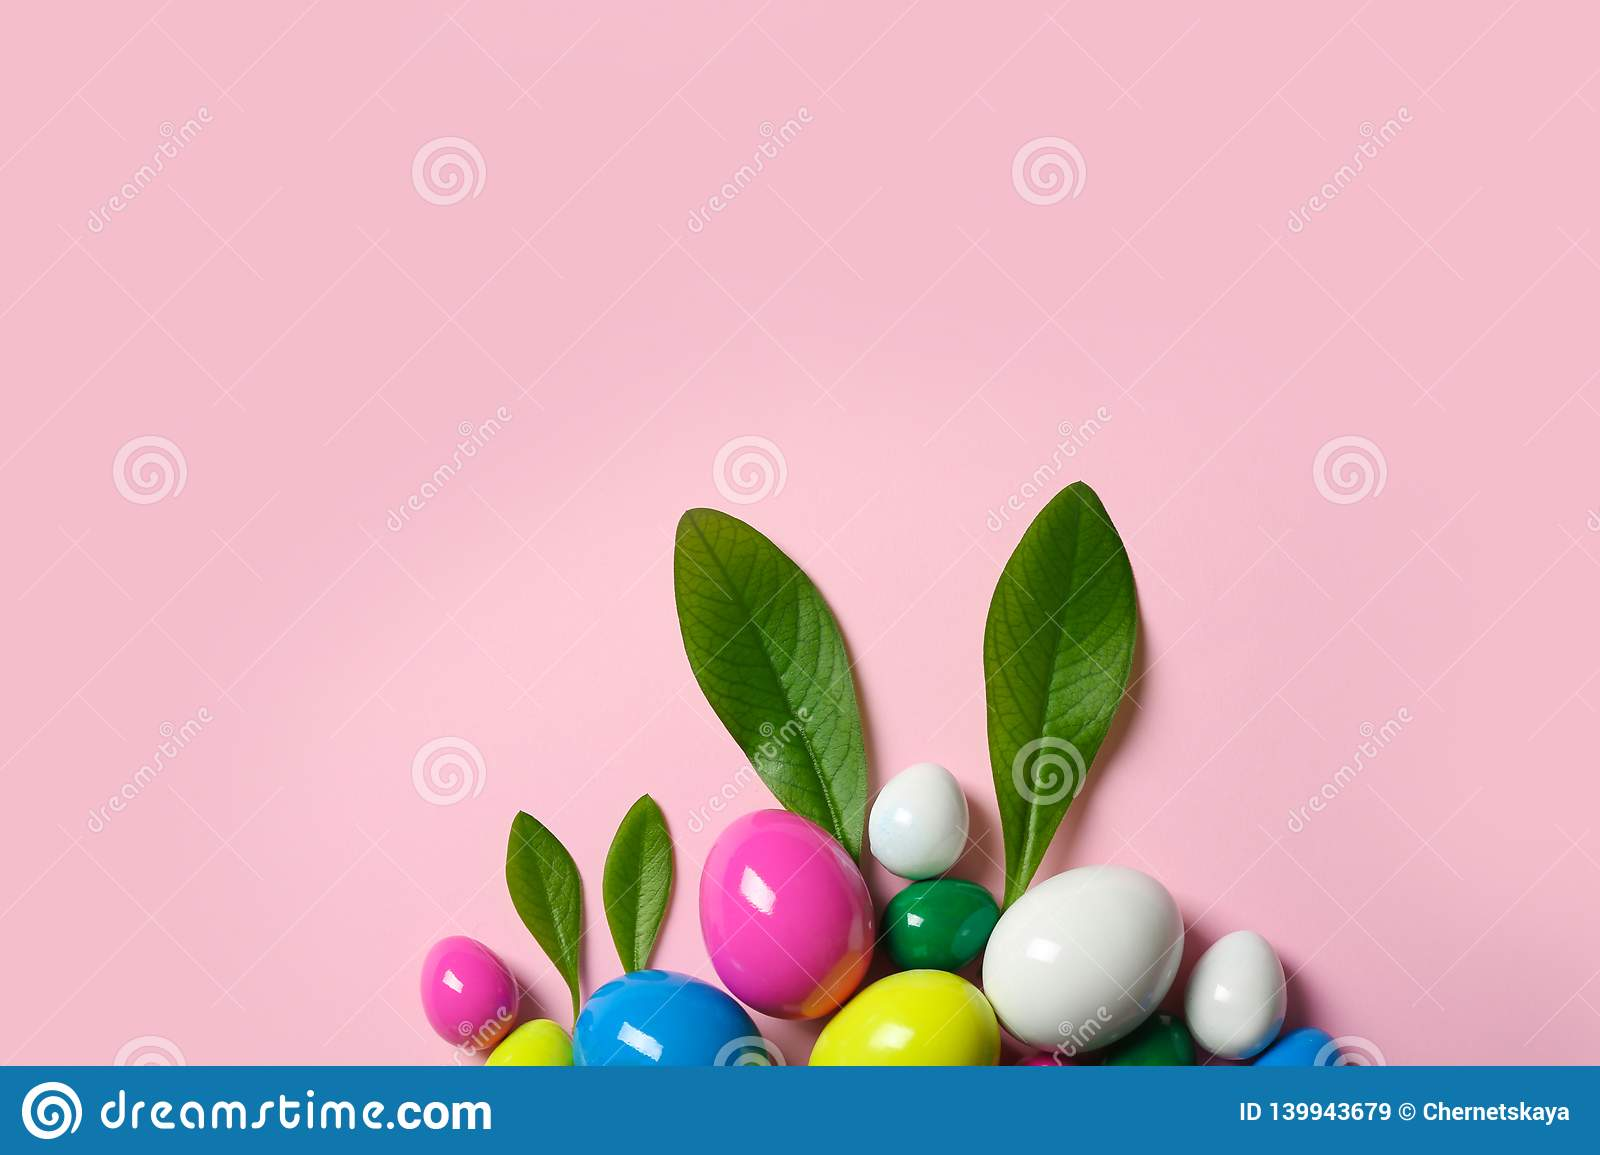 Creative flat lay composition with Easter bunny ears made of green leaves and eggs on color background